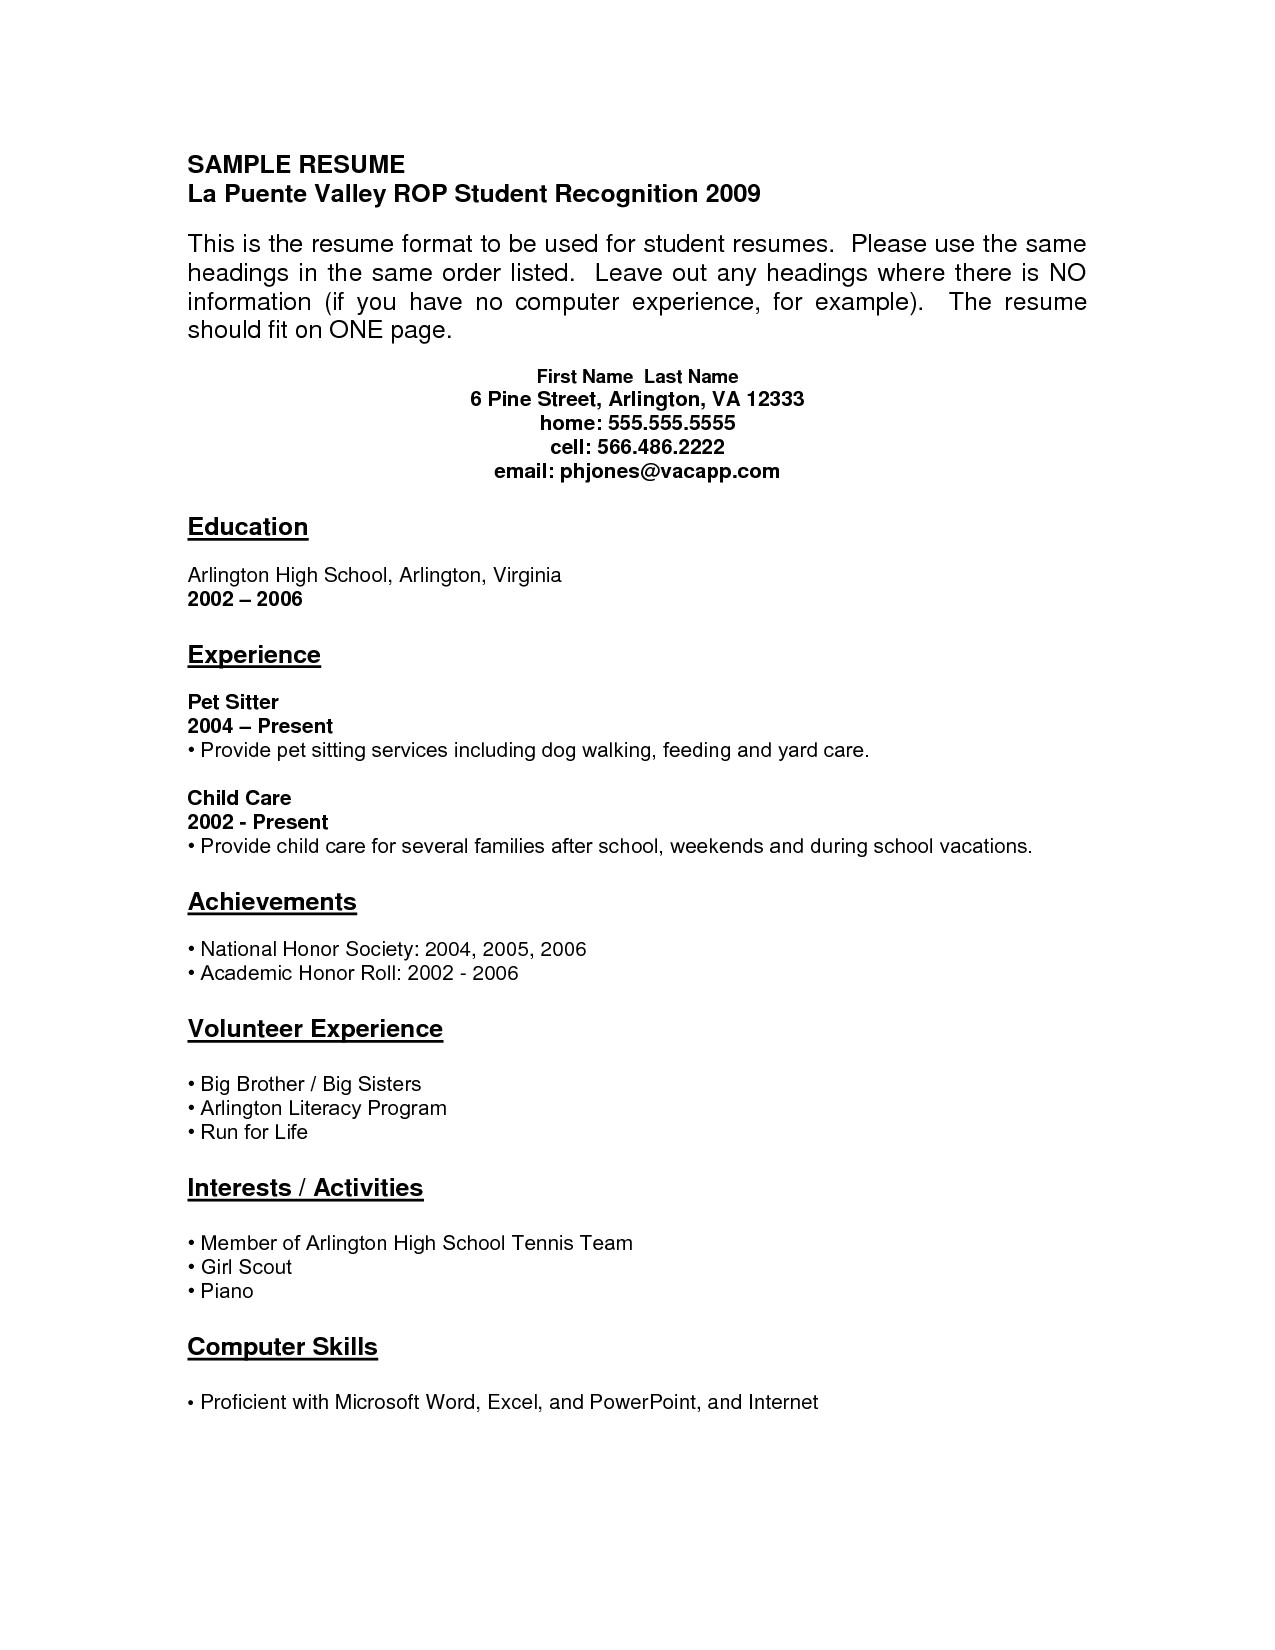 resume for highschool students with no experience work samples examples high school template